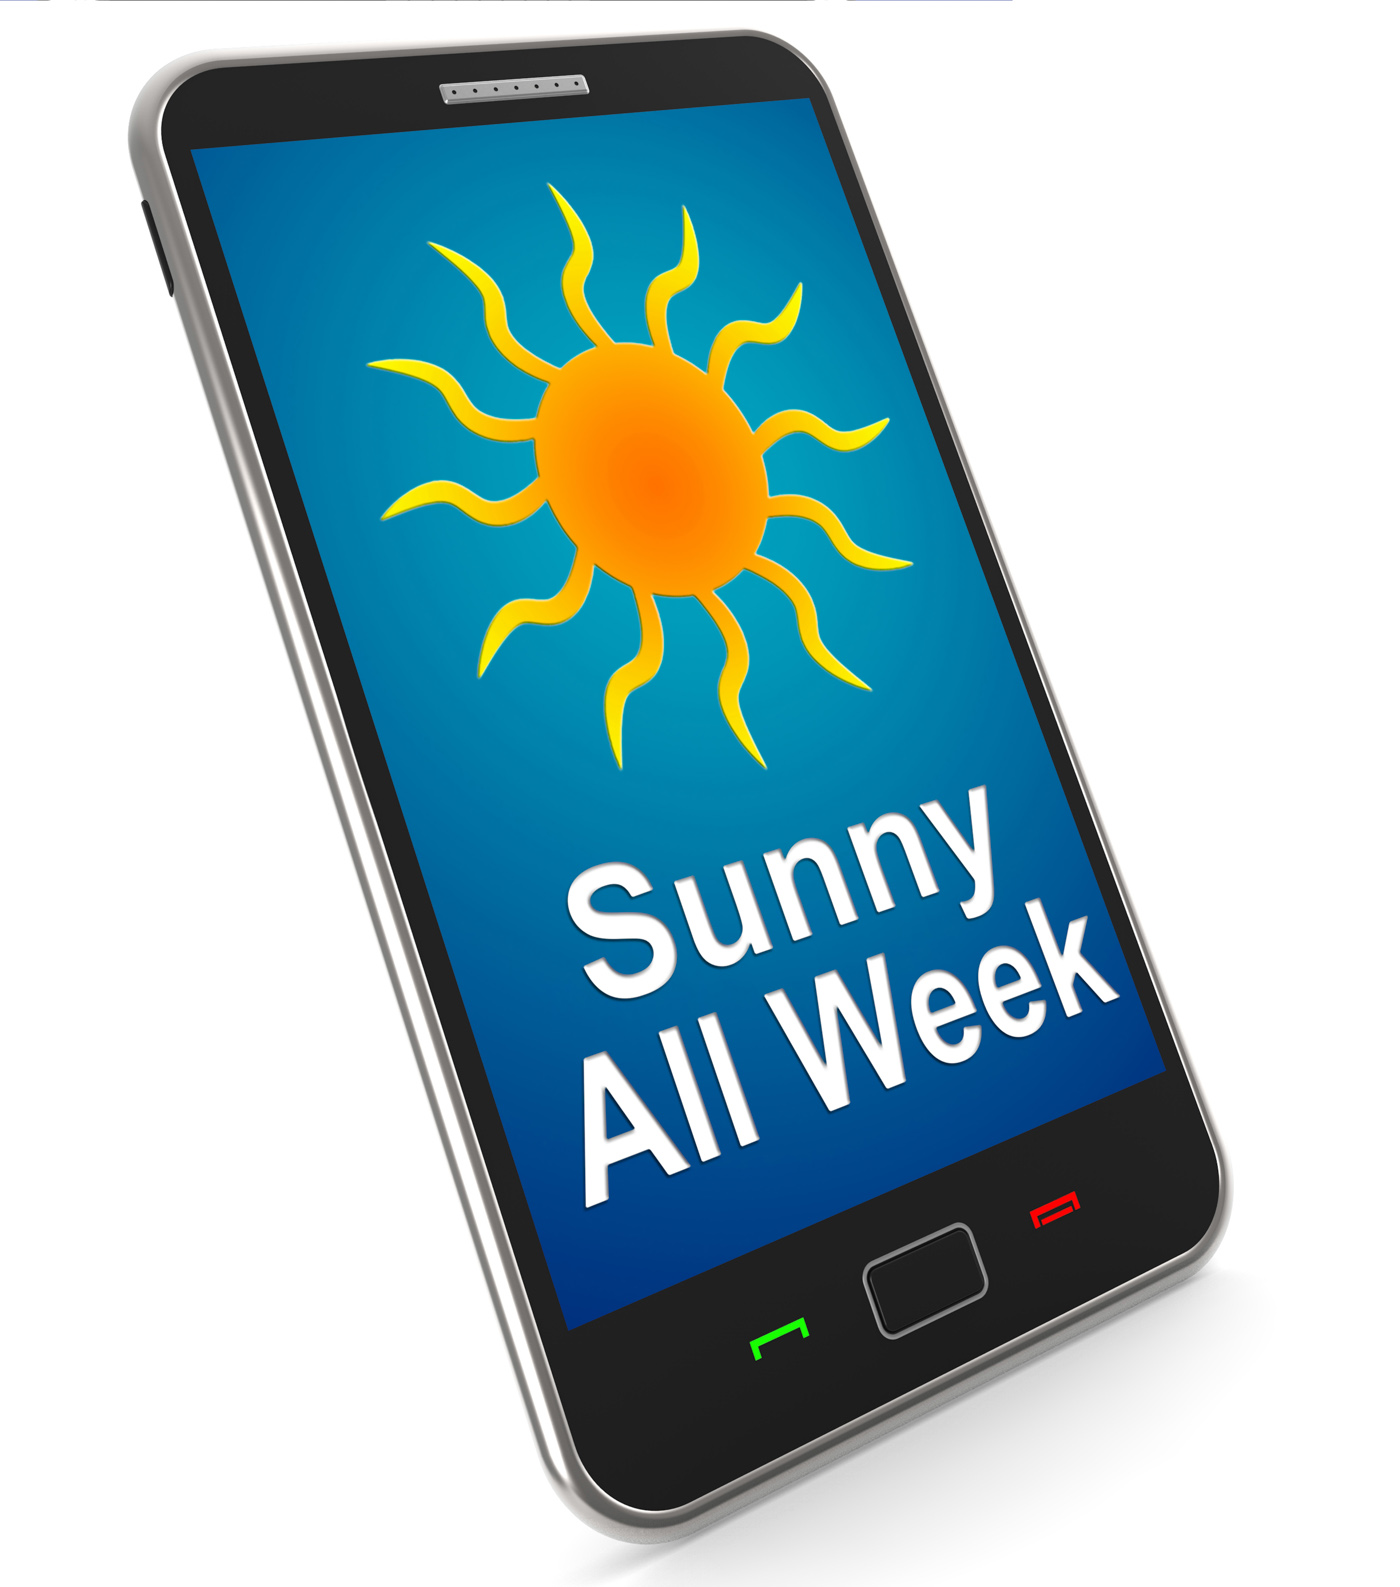 Sunny all week on mobile means hot weather photo